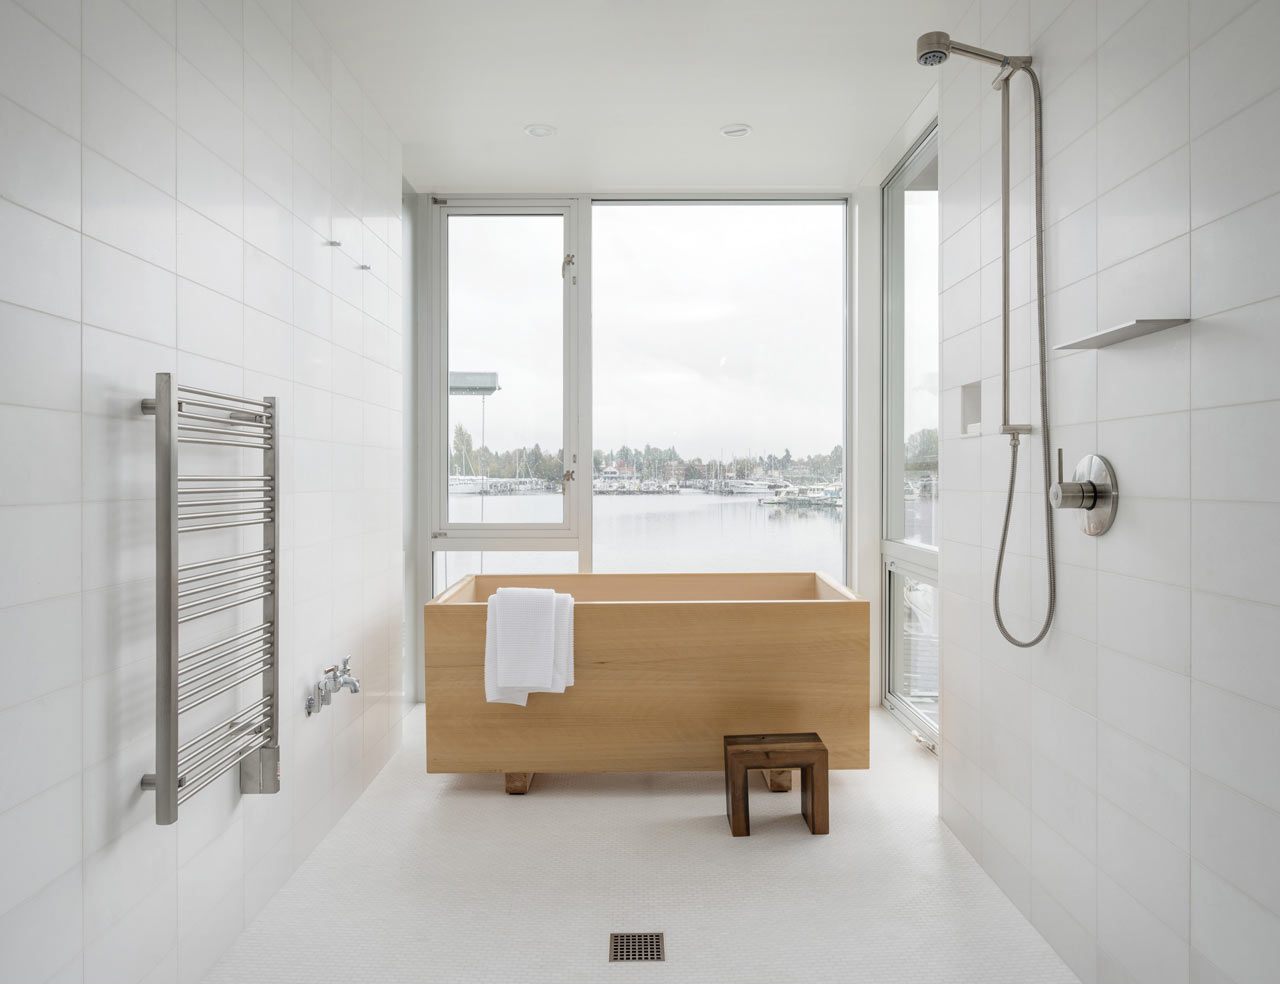 10 minimalist bathrooms of our dreams design milk - Small space bathroom vanities minimalist ...